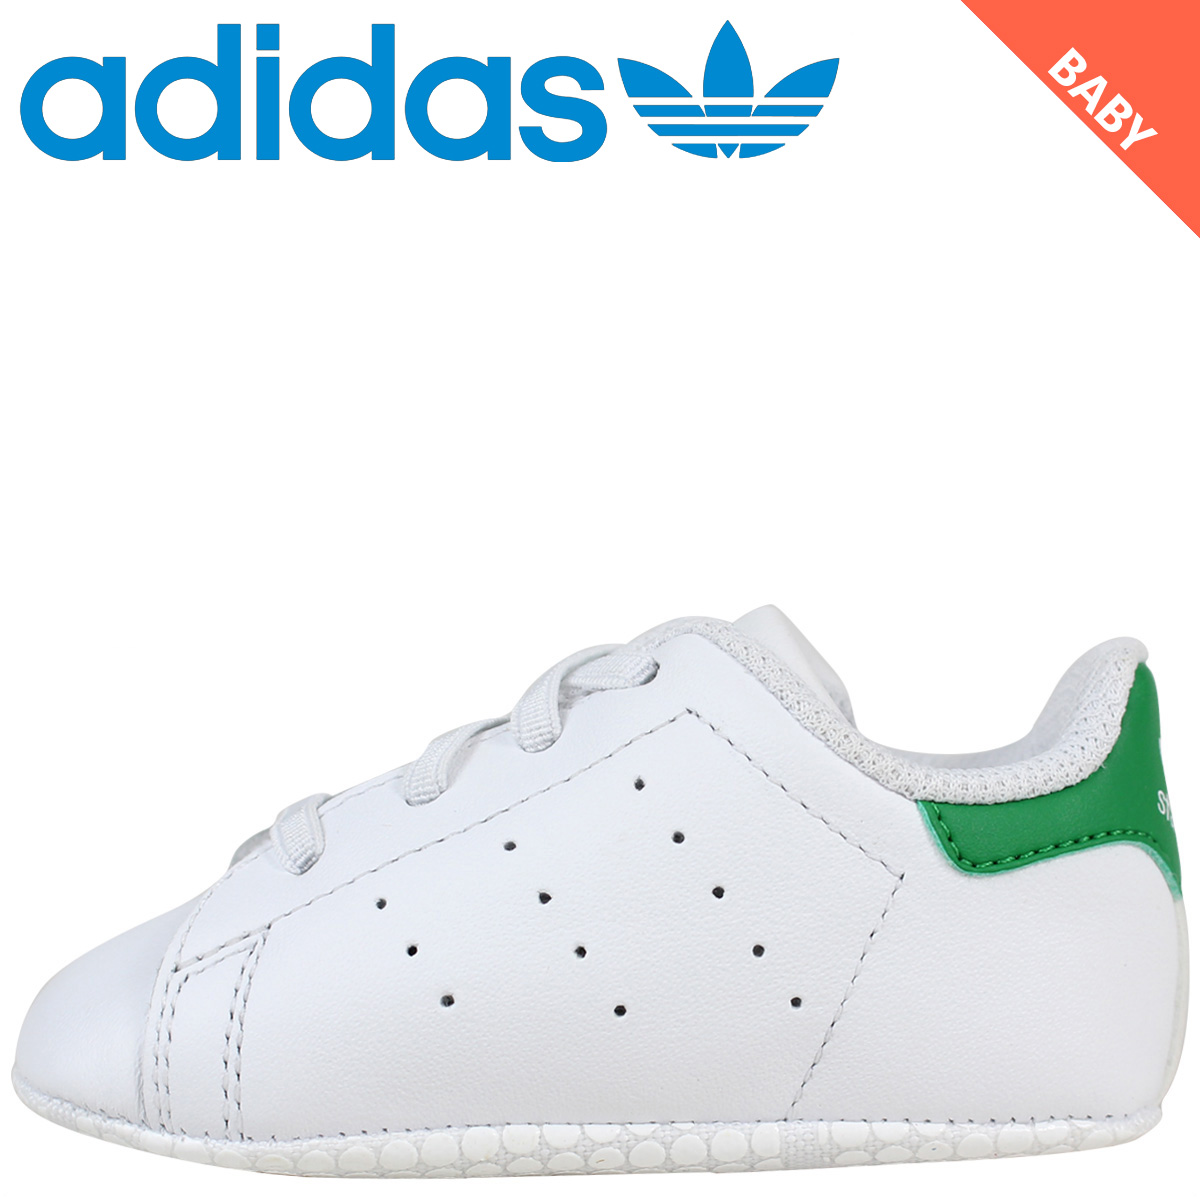 adidas Originals Stan Smith kids baby Adidas sneakers STAN SMITH CRIB shoes  B24101 white white originals